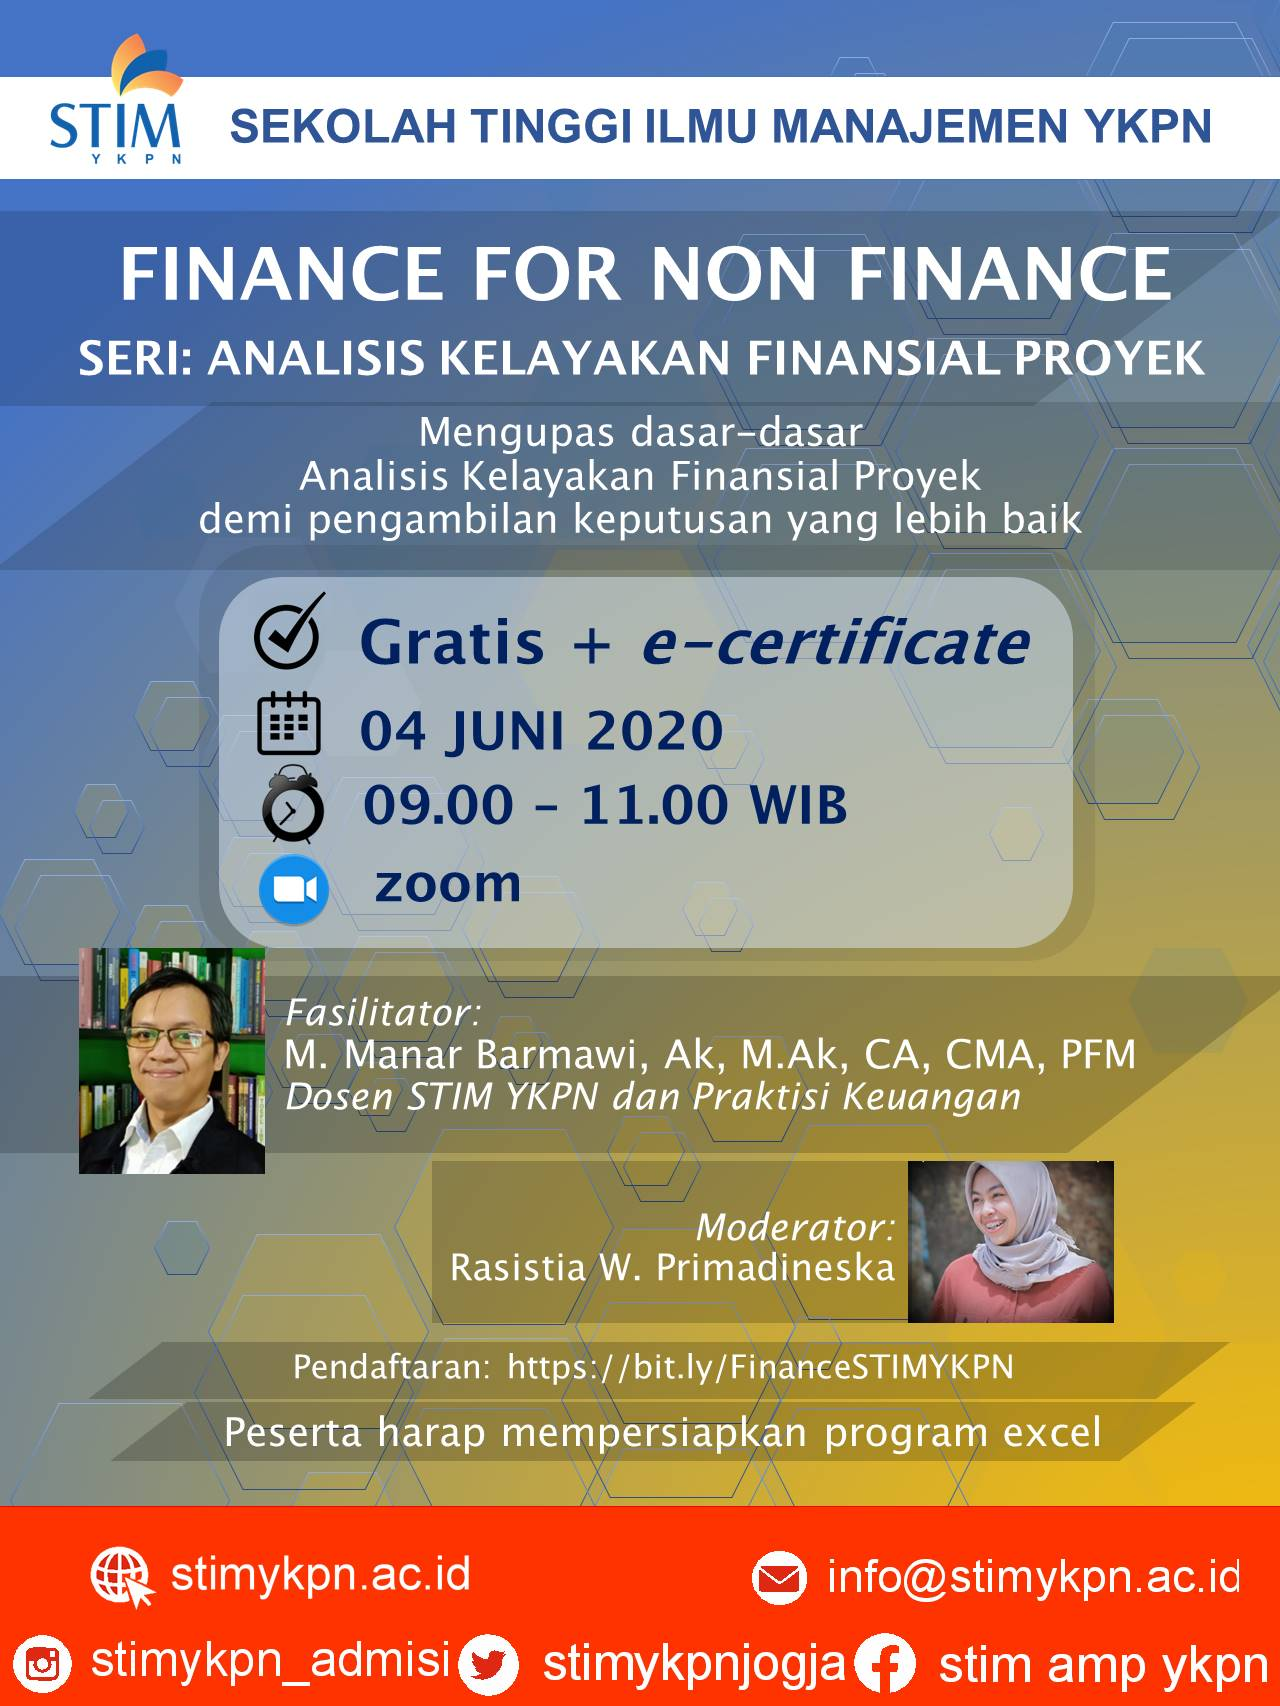 finance-for-non-finance-analisis-kelayakan-finansial-proyek